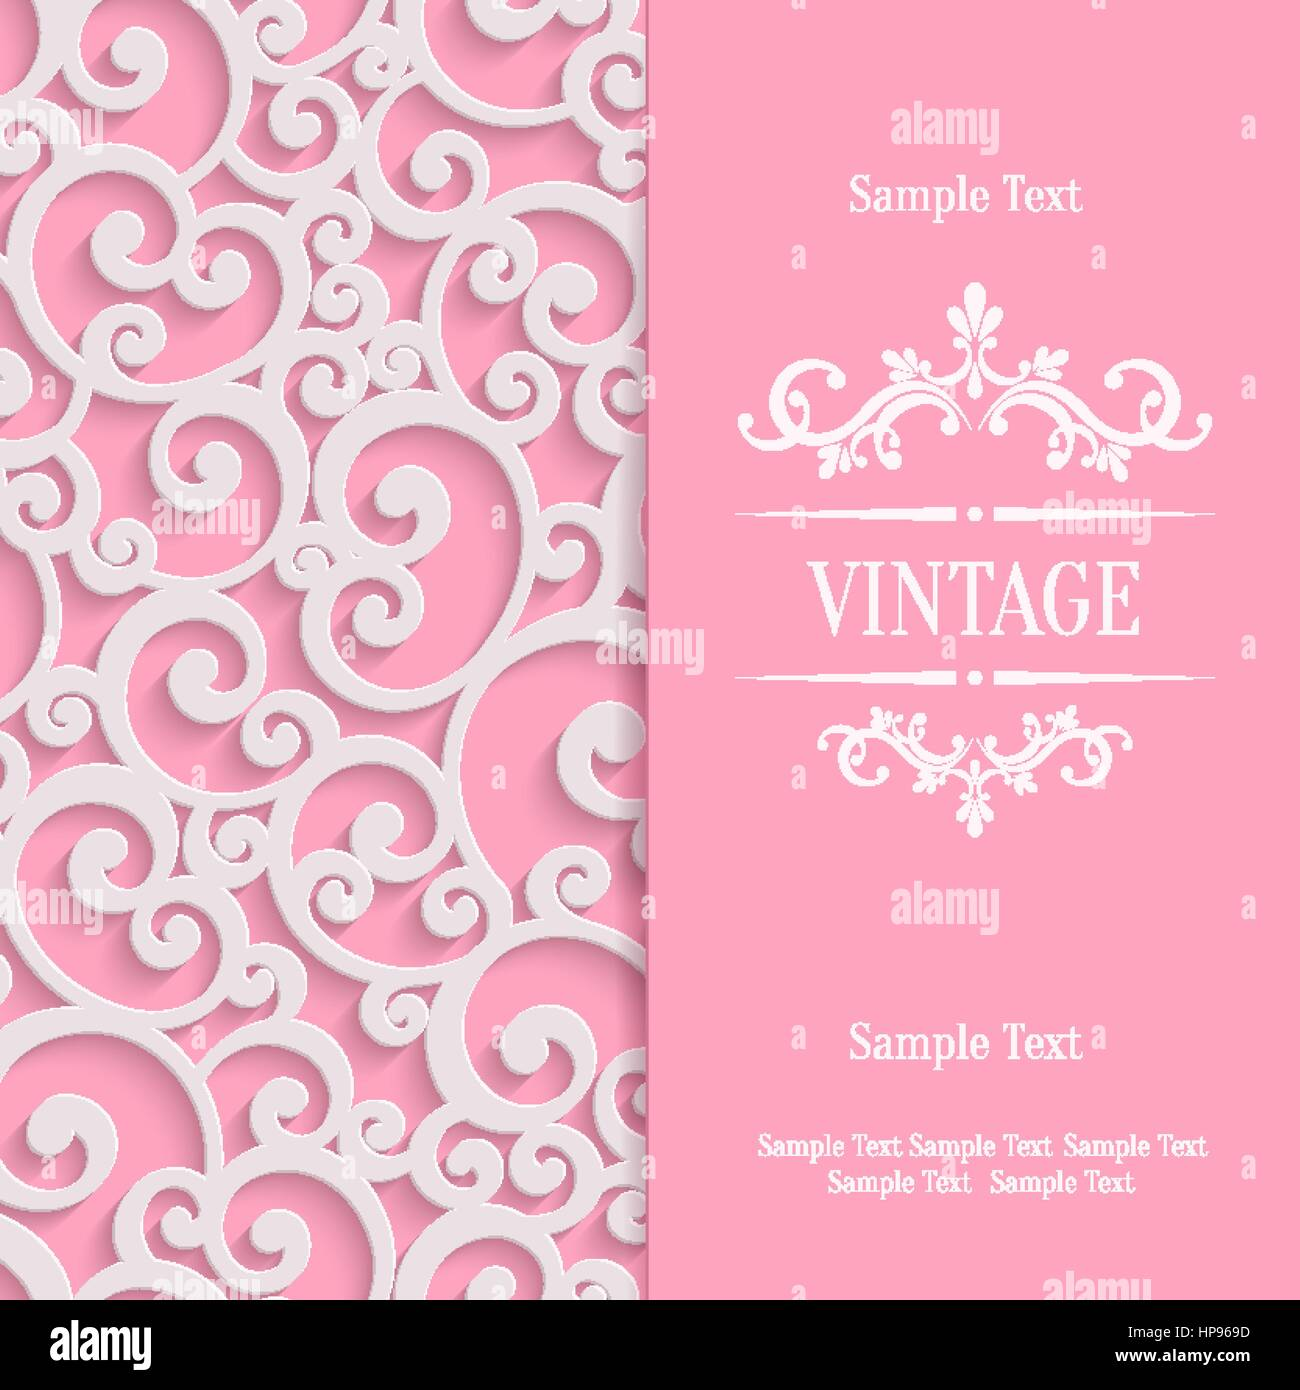 Pink 3d swirl valentines day card with floral curl pattern stock pink 3d swirl valentines day card with floral curl pattern invitation vector template background stopboris Image collections